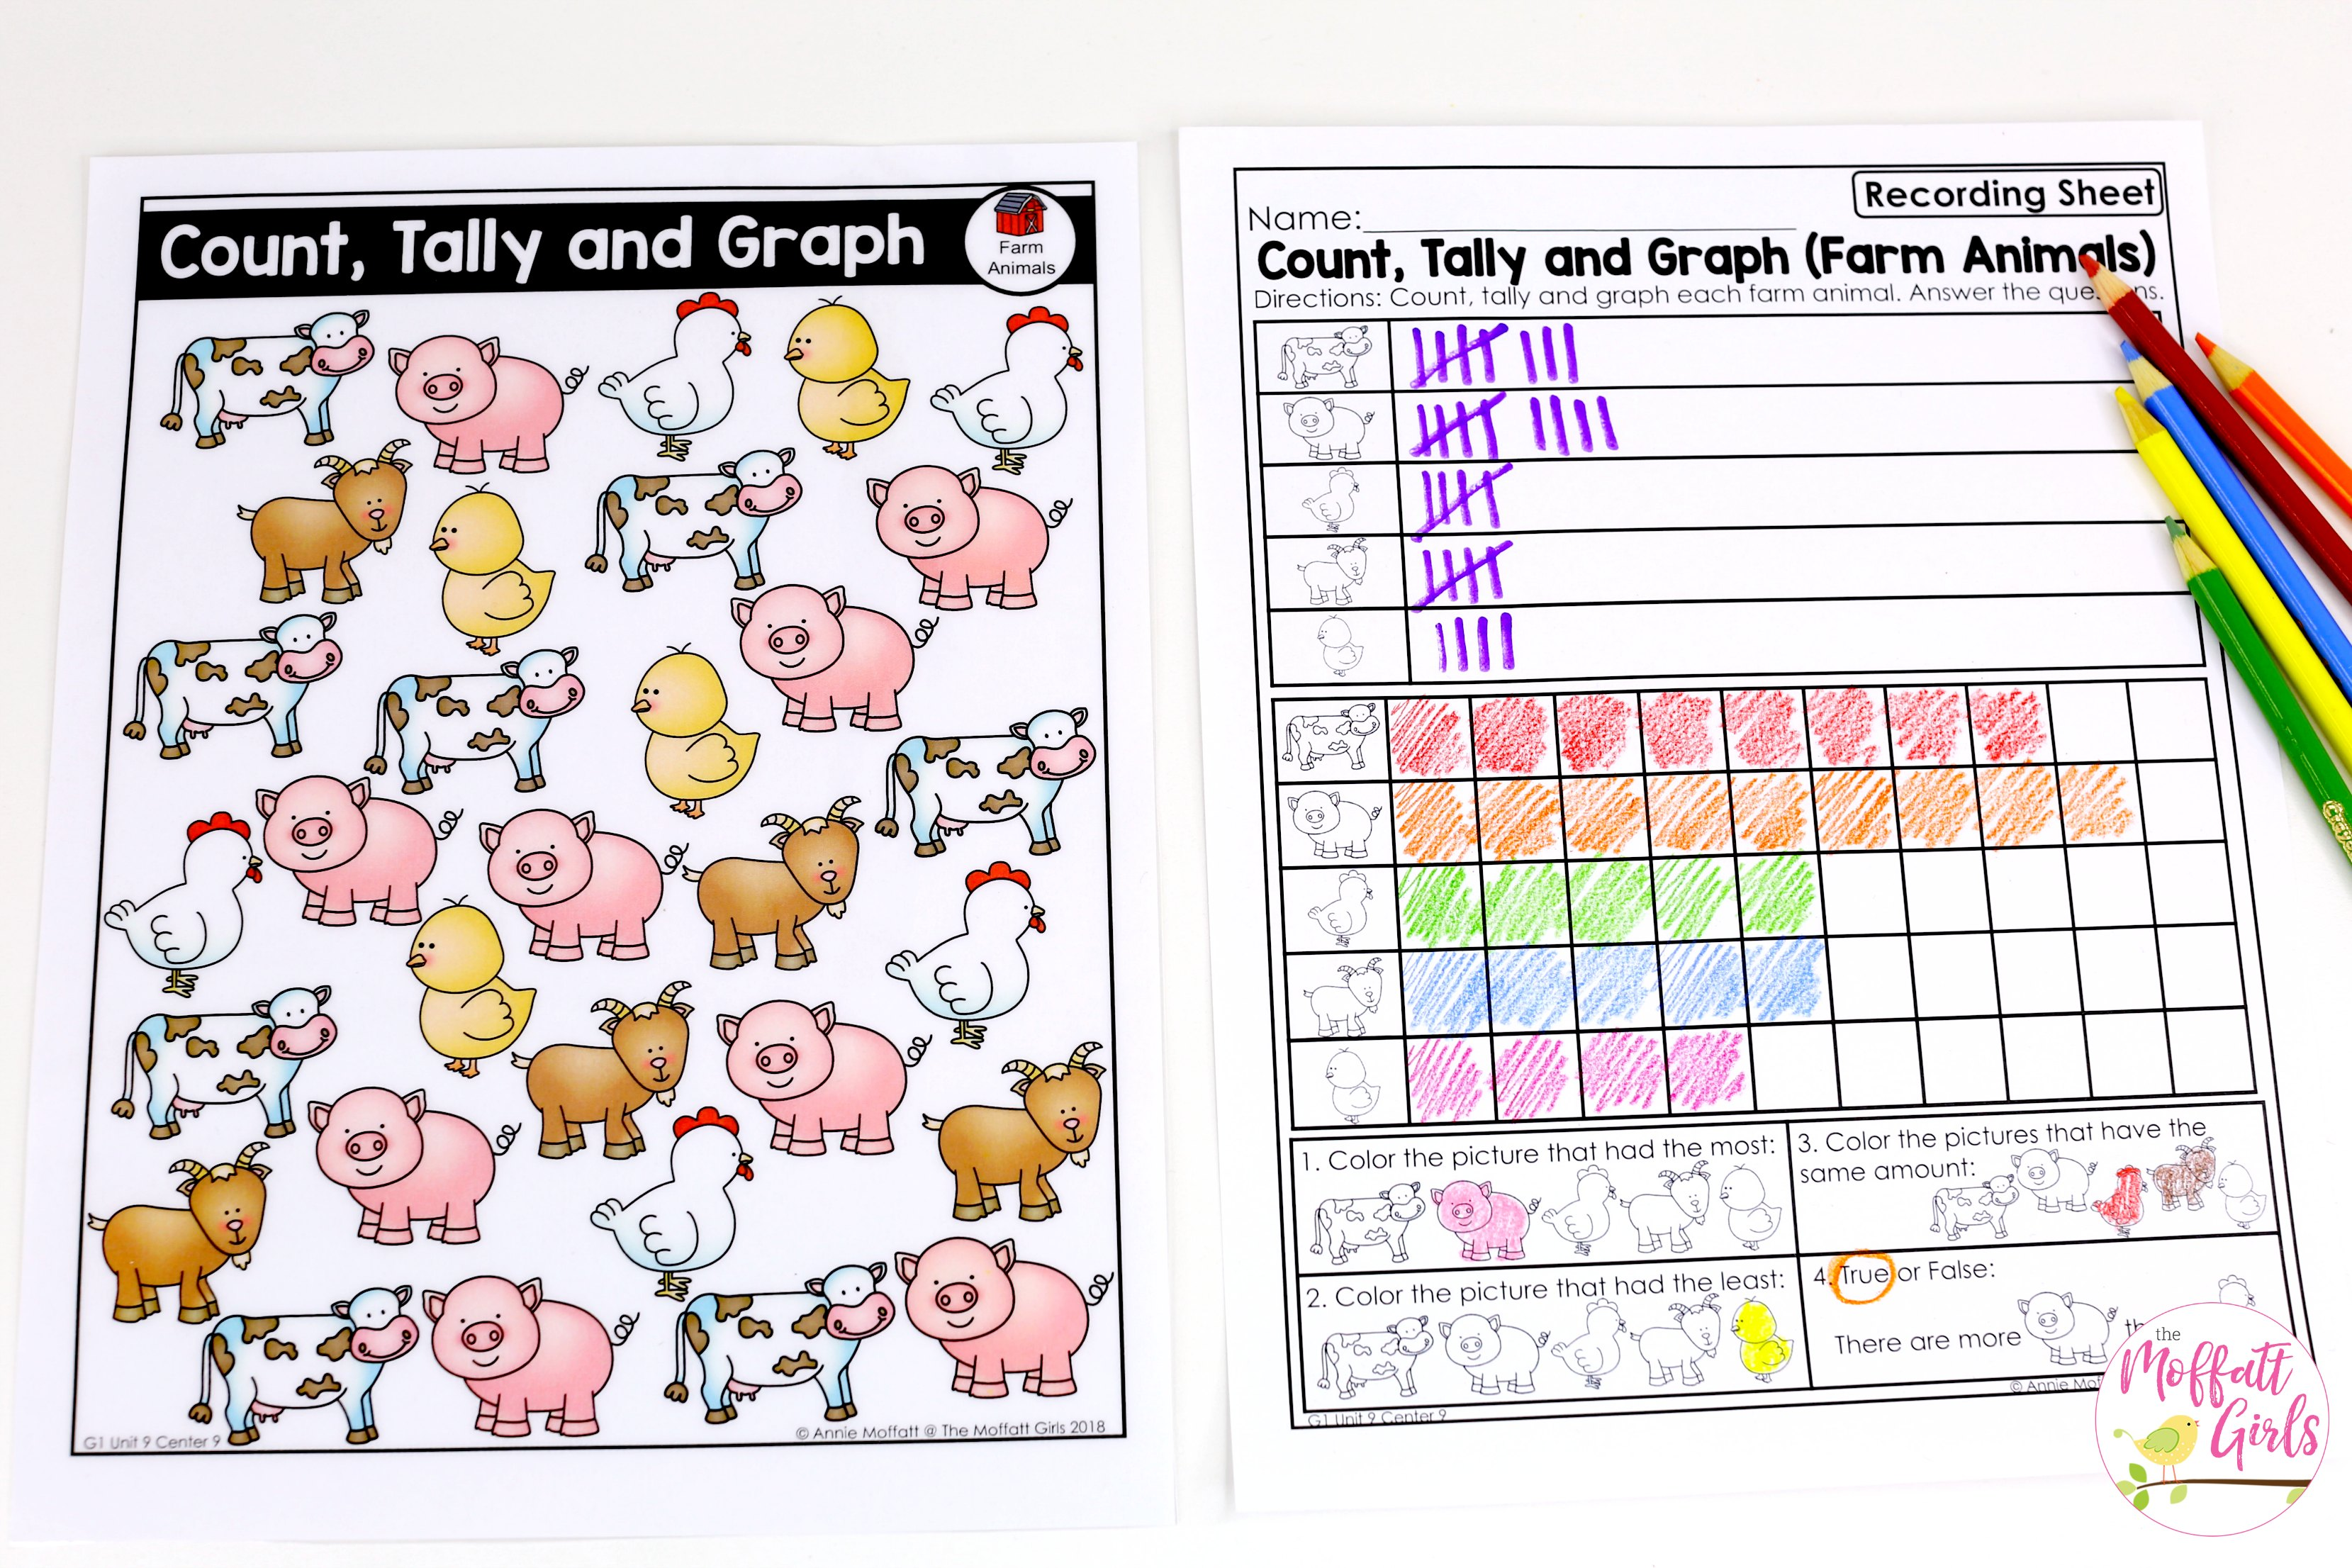 Count And Graph Farm Animals 1b